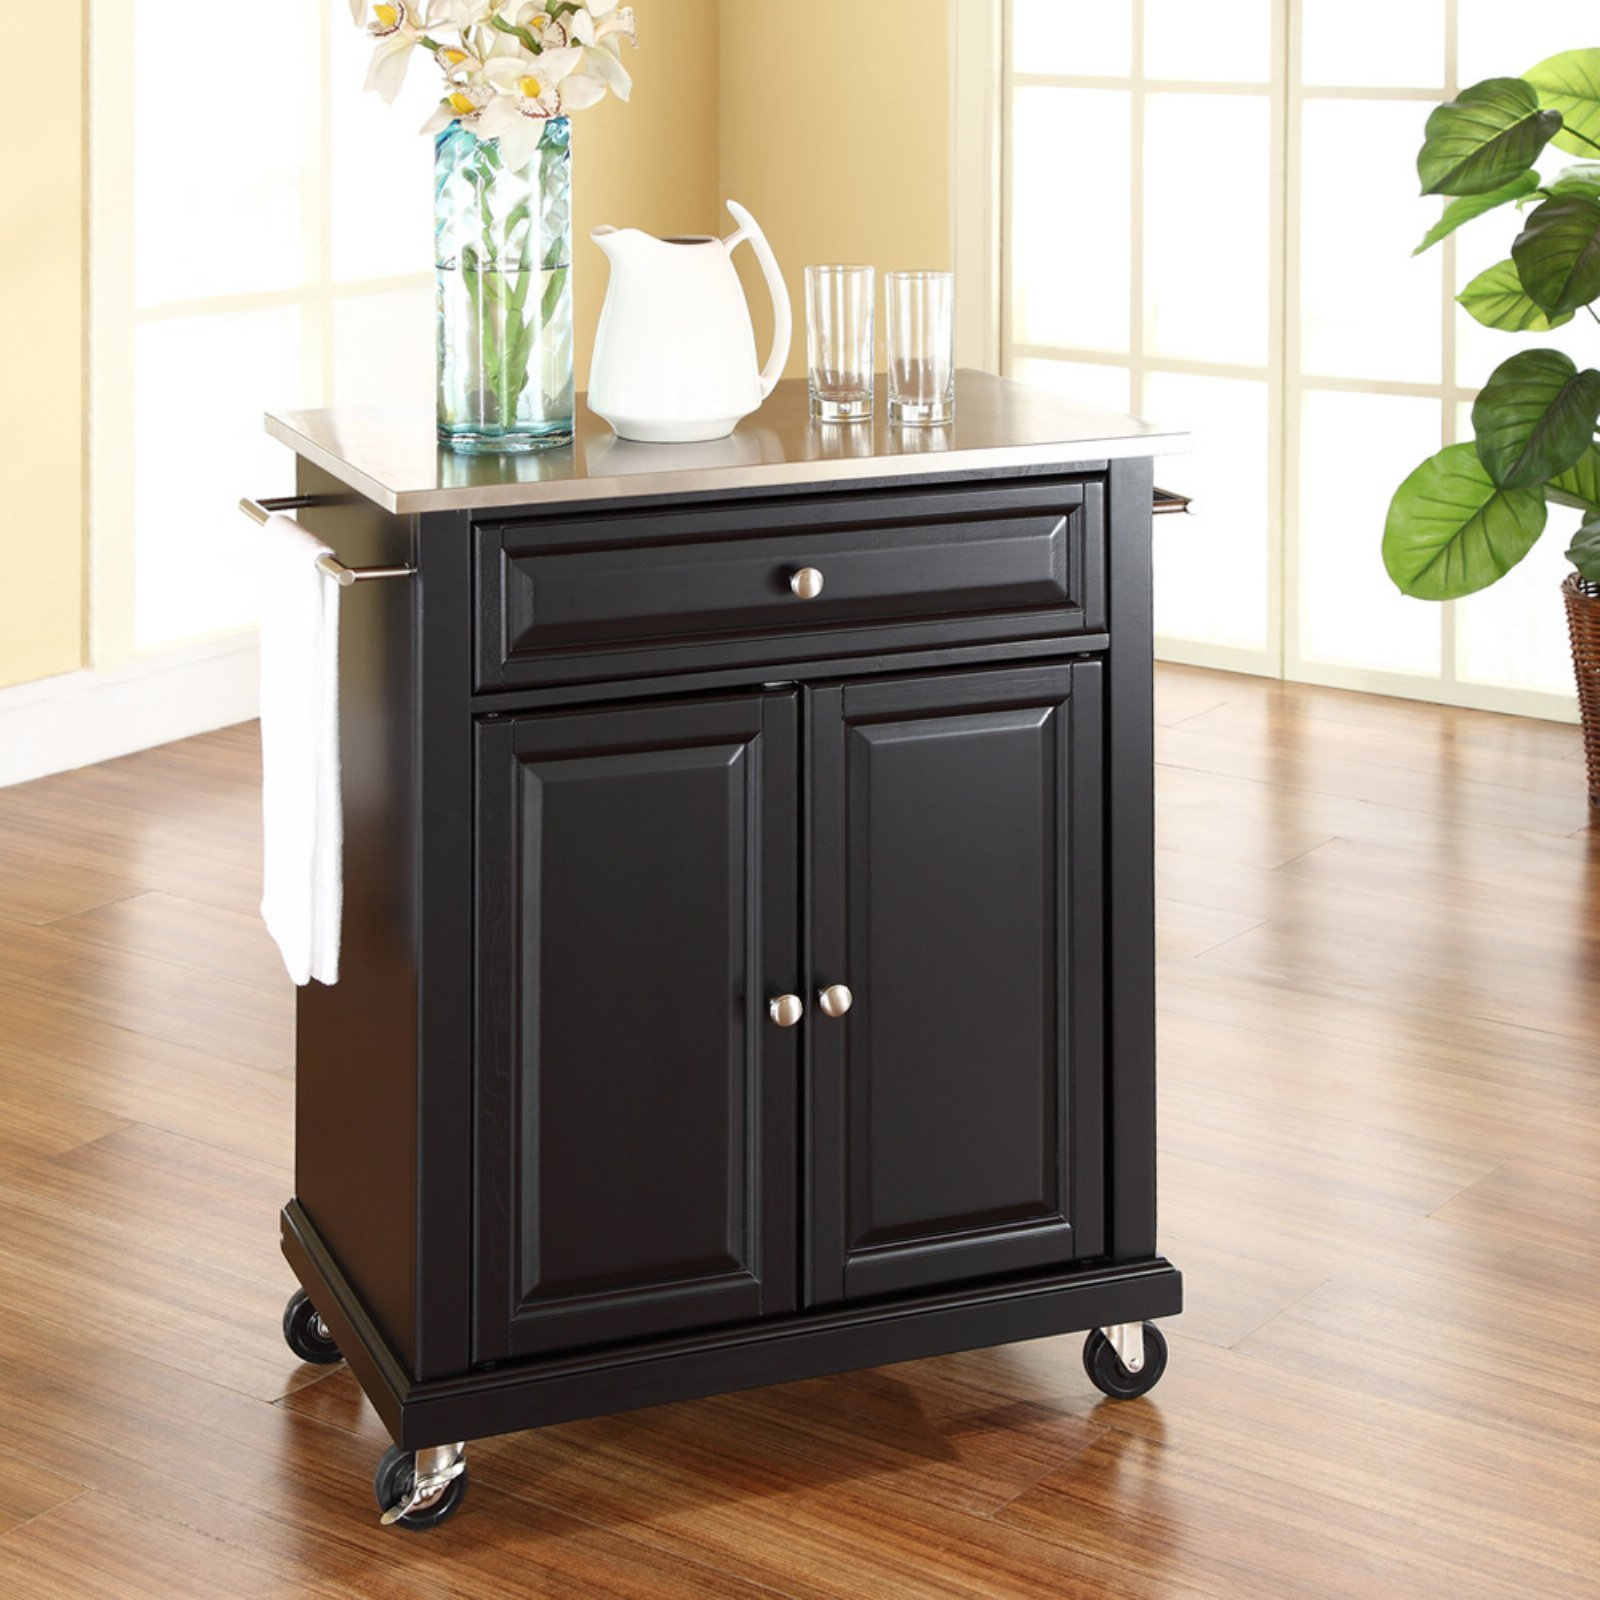 Crosley Furniture Stainless Steel Top Portable Kitchen Cart